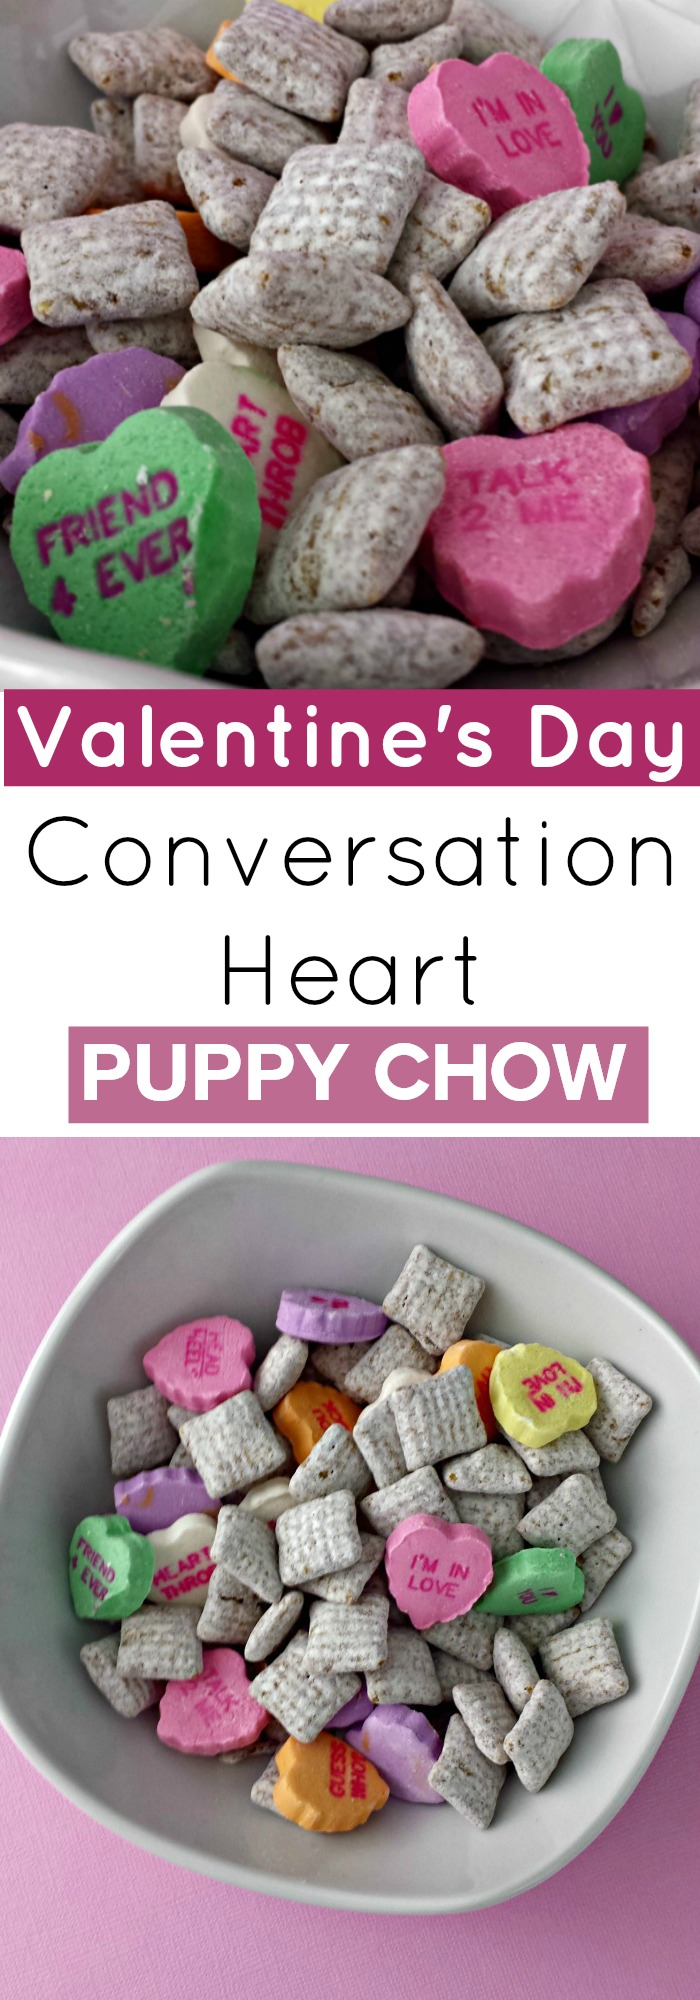 Valentine's Day Conversation Heart Puppy Chow